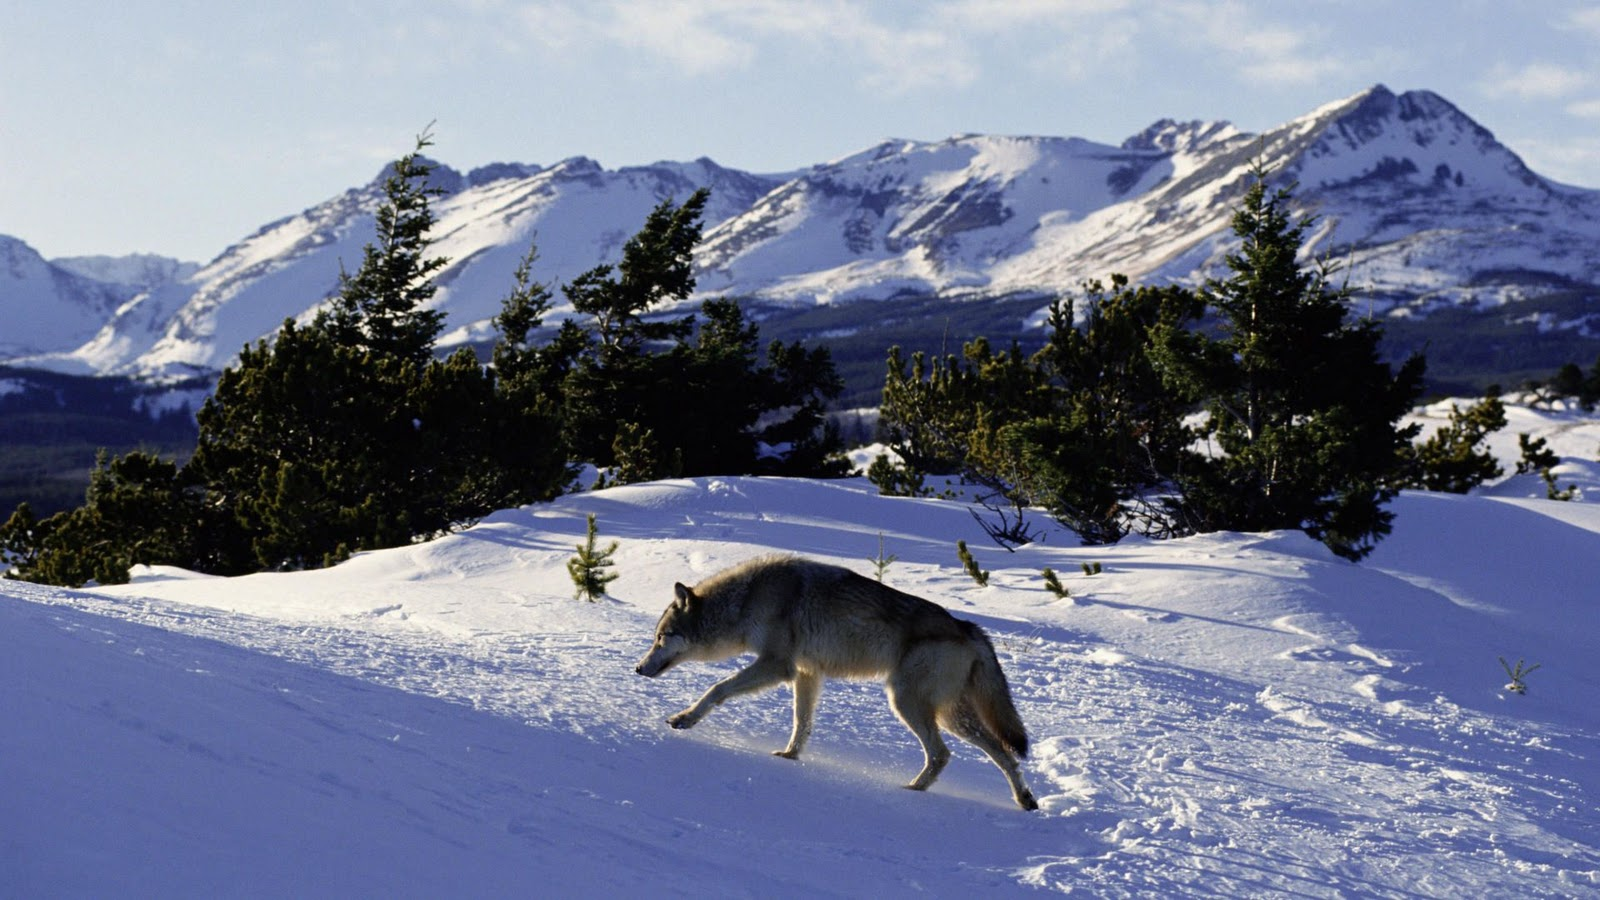 http://3.bp.blogspot.com/_nD_YgZuOadA/TS3a7qGd9rI/AAAAAAAABSI/V5Hr5M3_2i0/s1600/North_American_Grey_Wolf_Rocky_Mountains.jpg